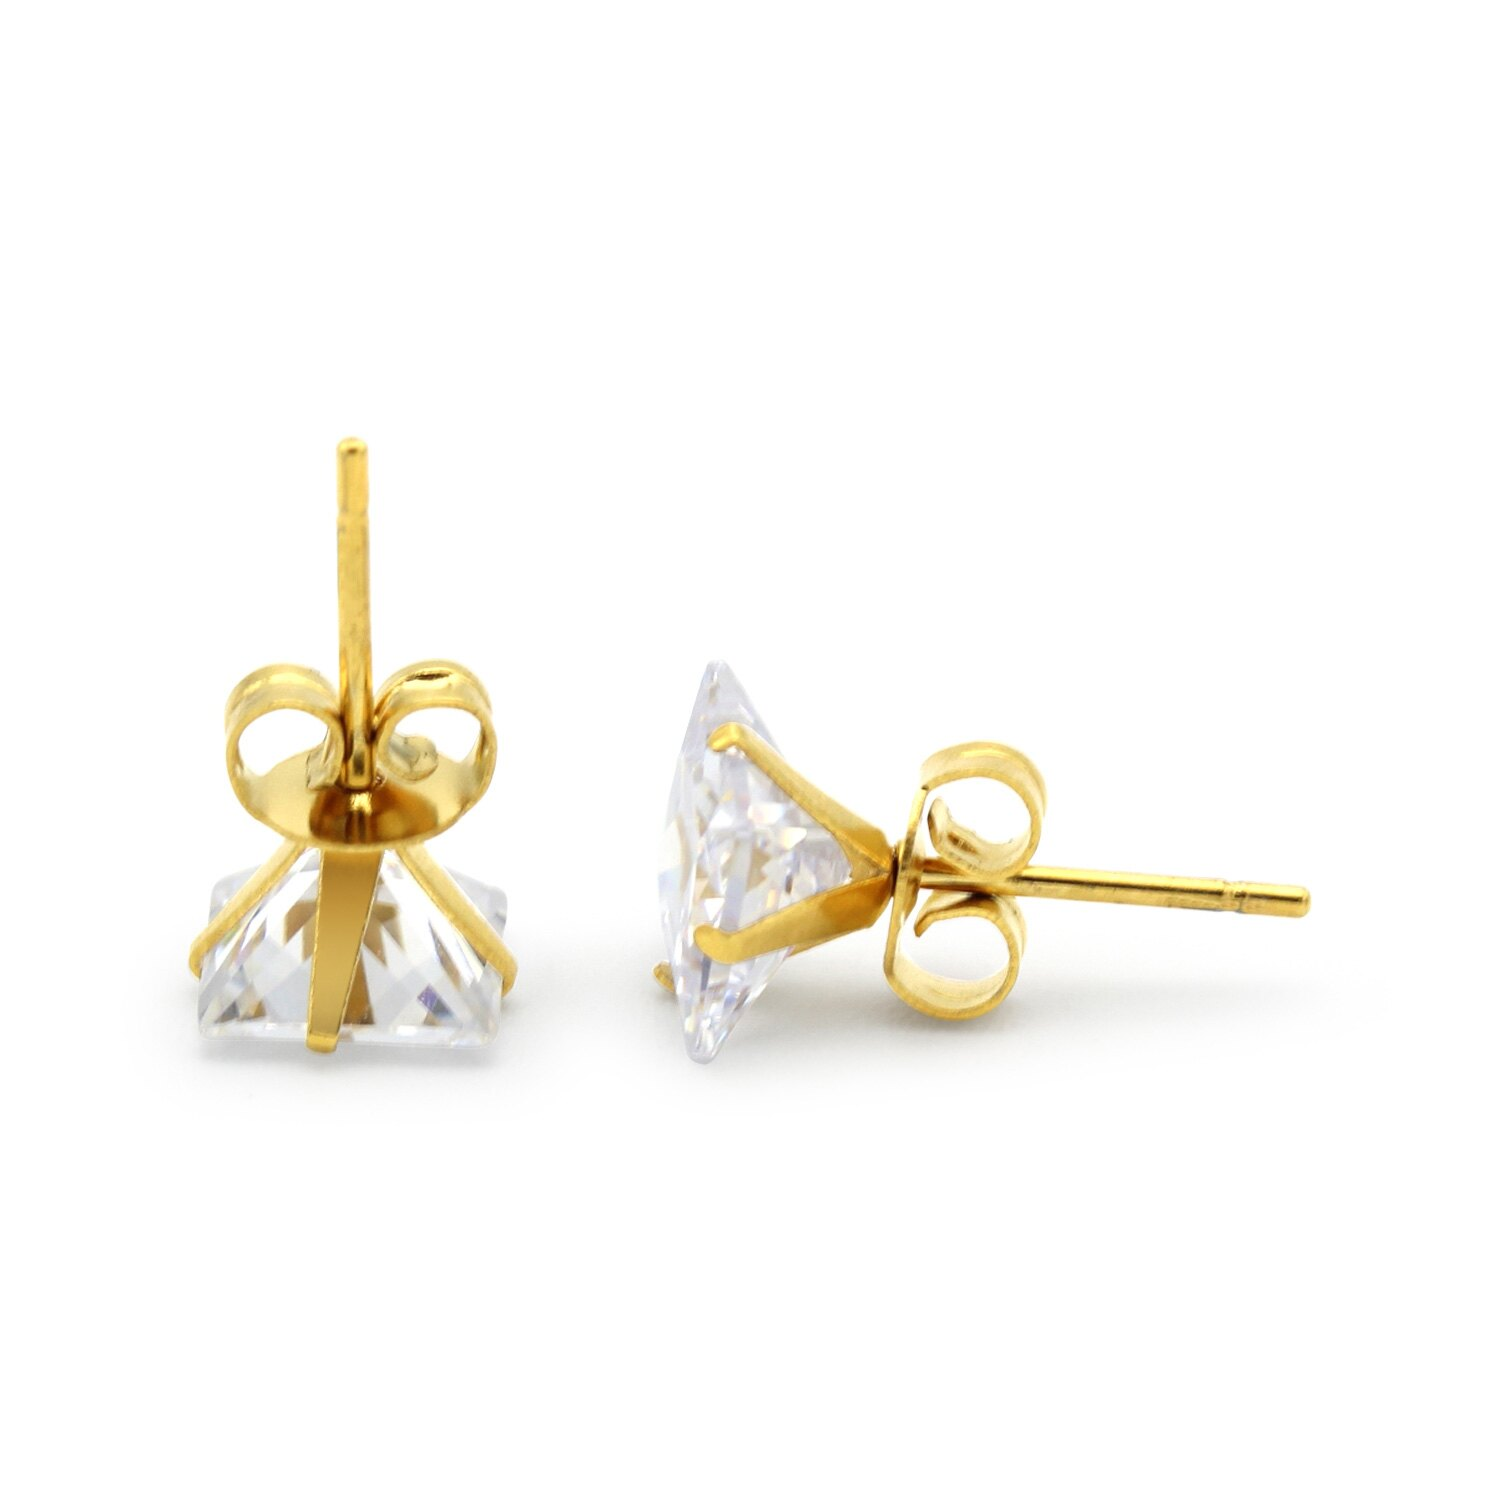 a75060dc0 Gold Cubic Zirconia Unisex Stud Earrings Stainless Steel Jewelry Collection  Square Studs 3-10 mm